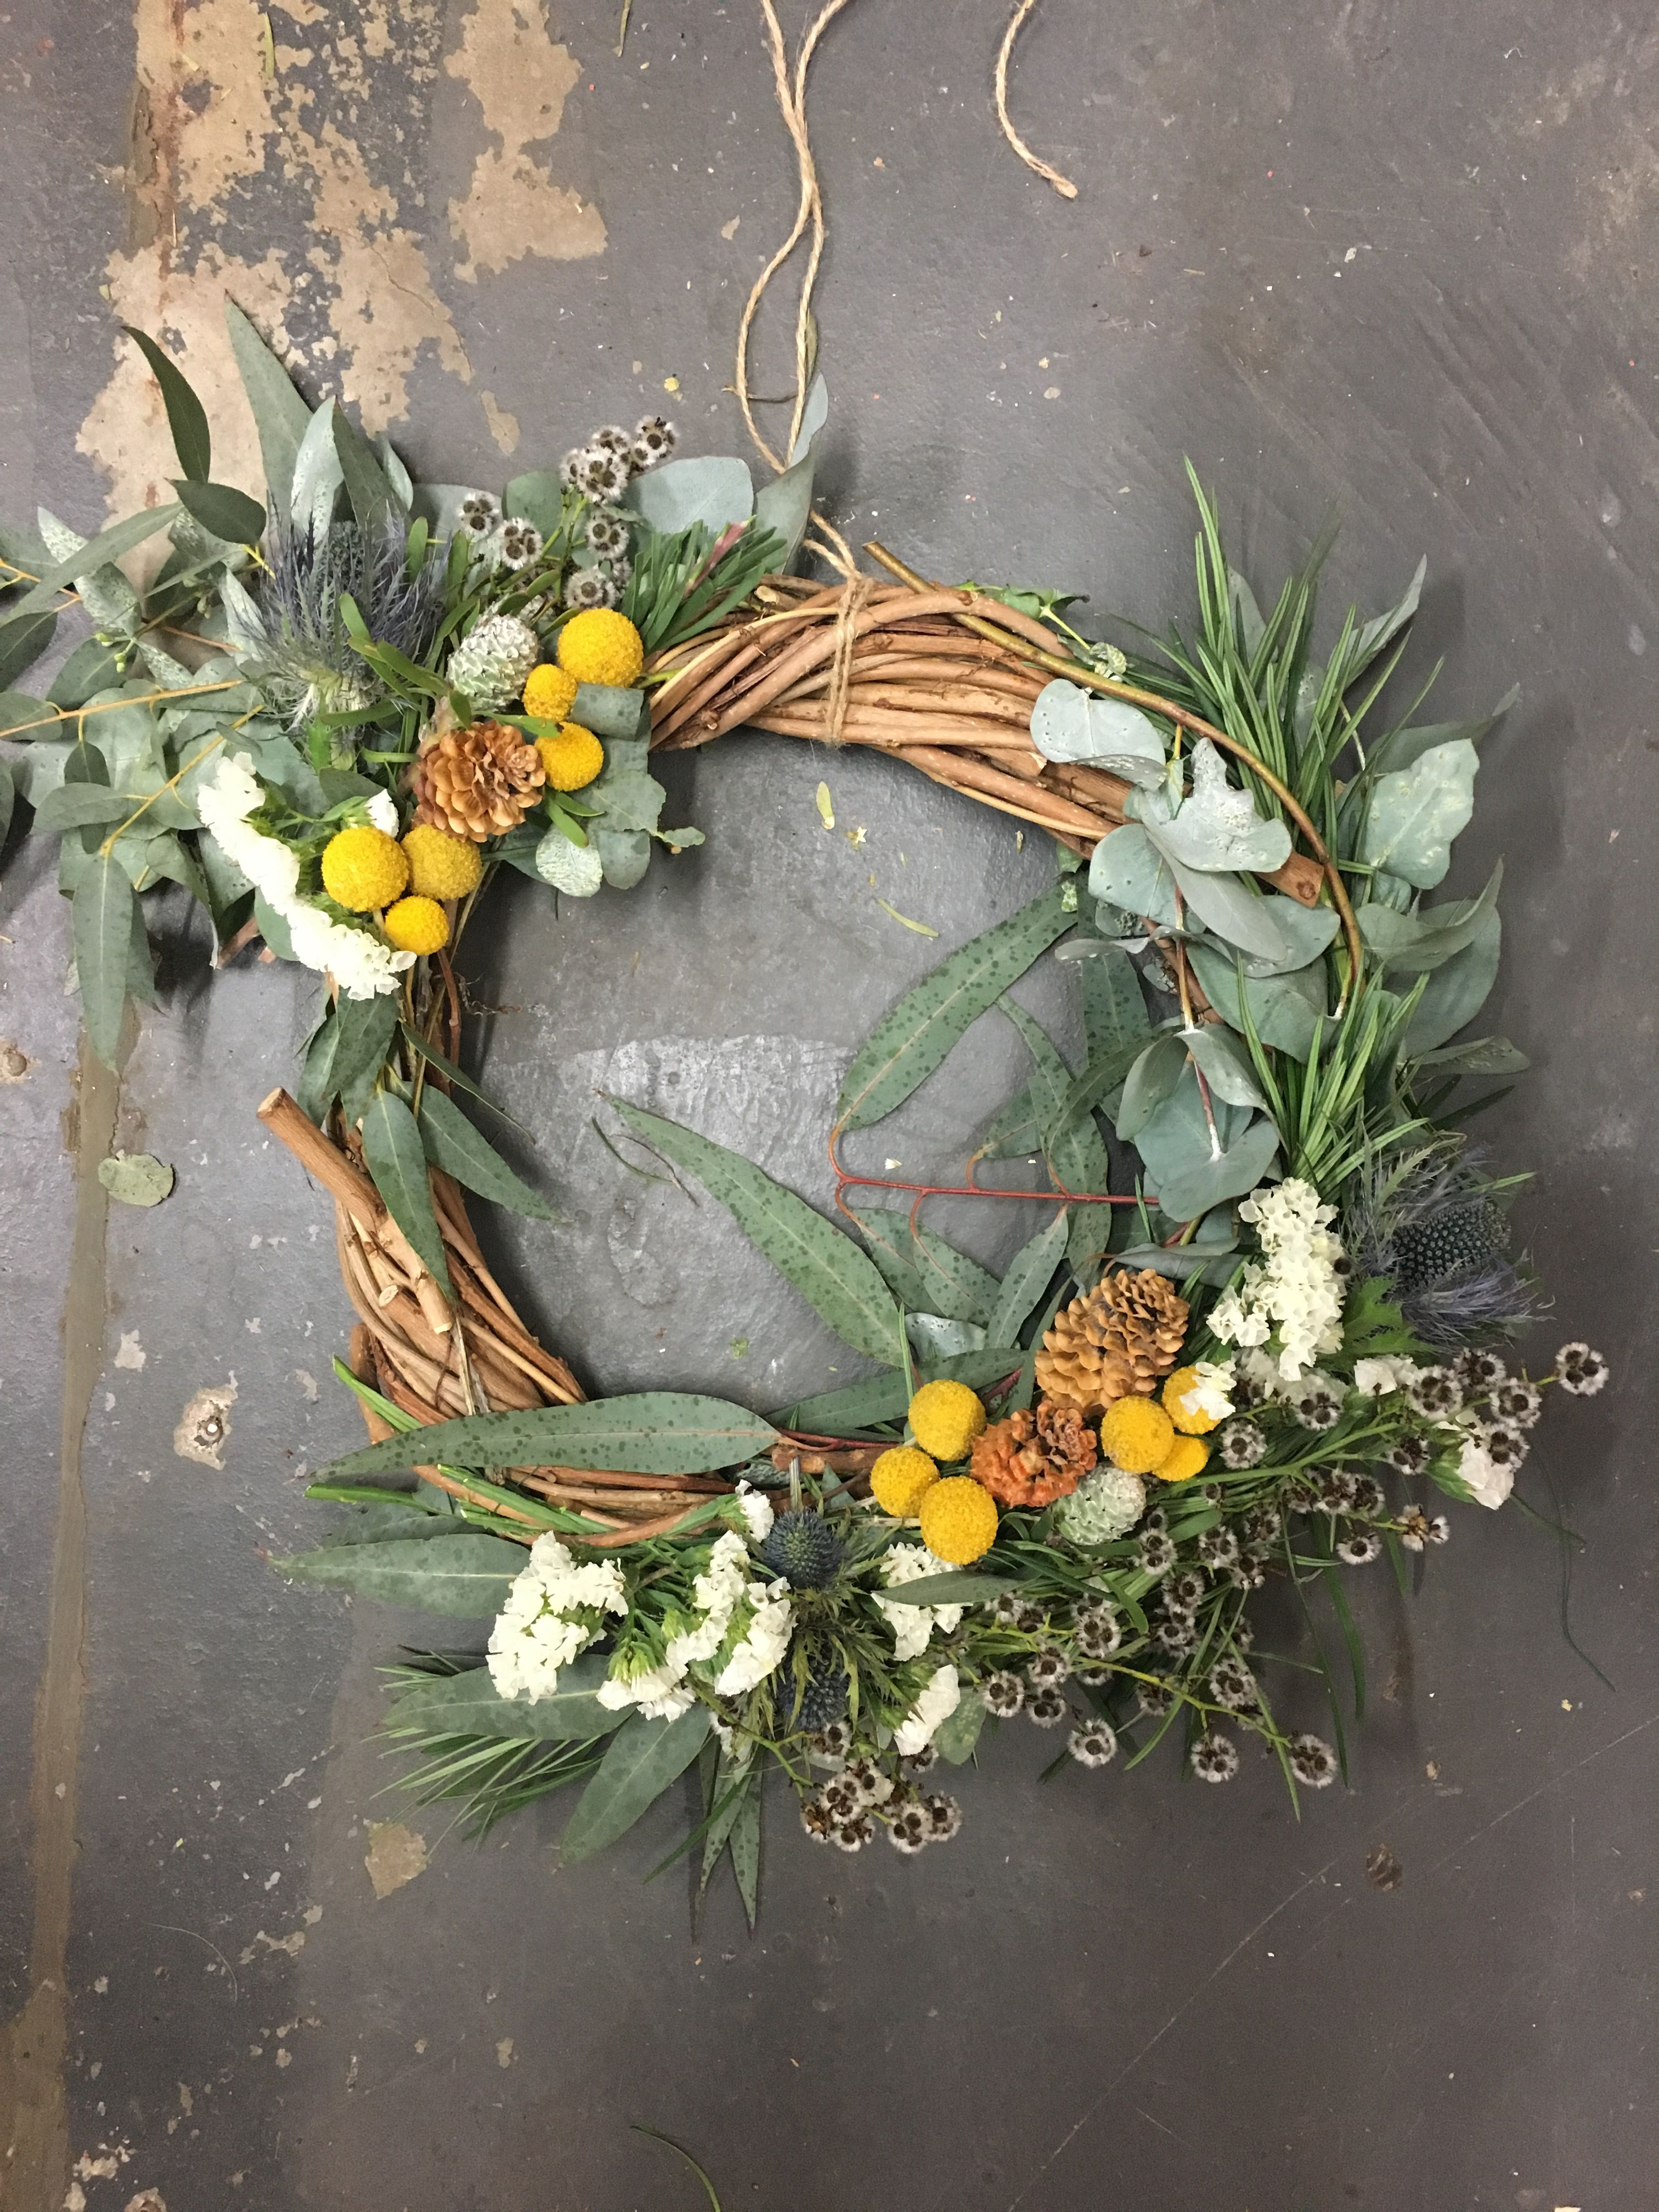 Handmade Christmas wreath with Australian natives